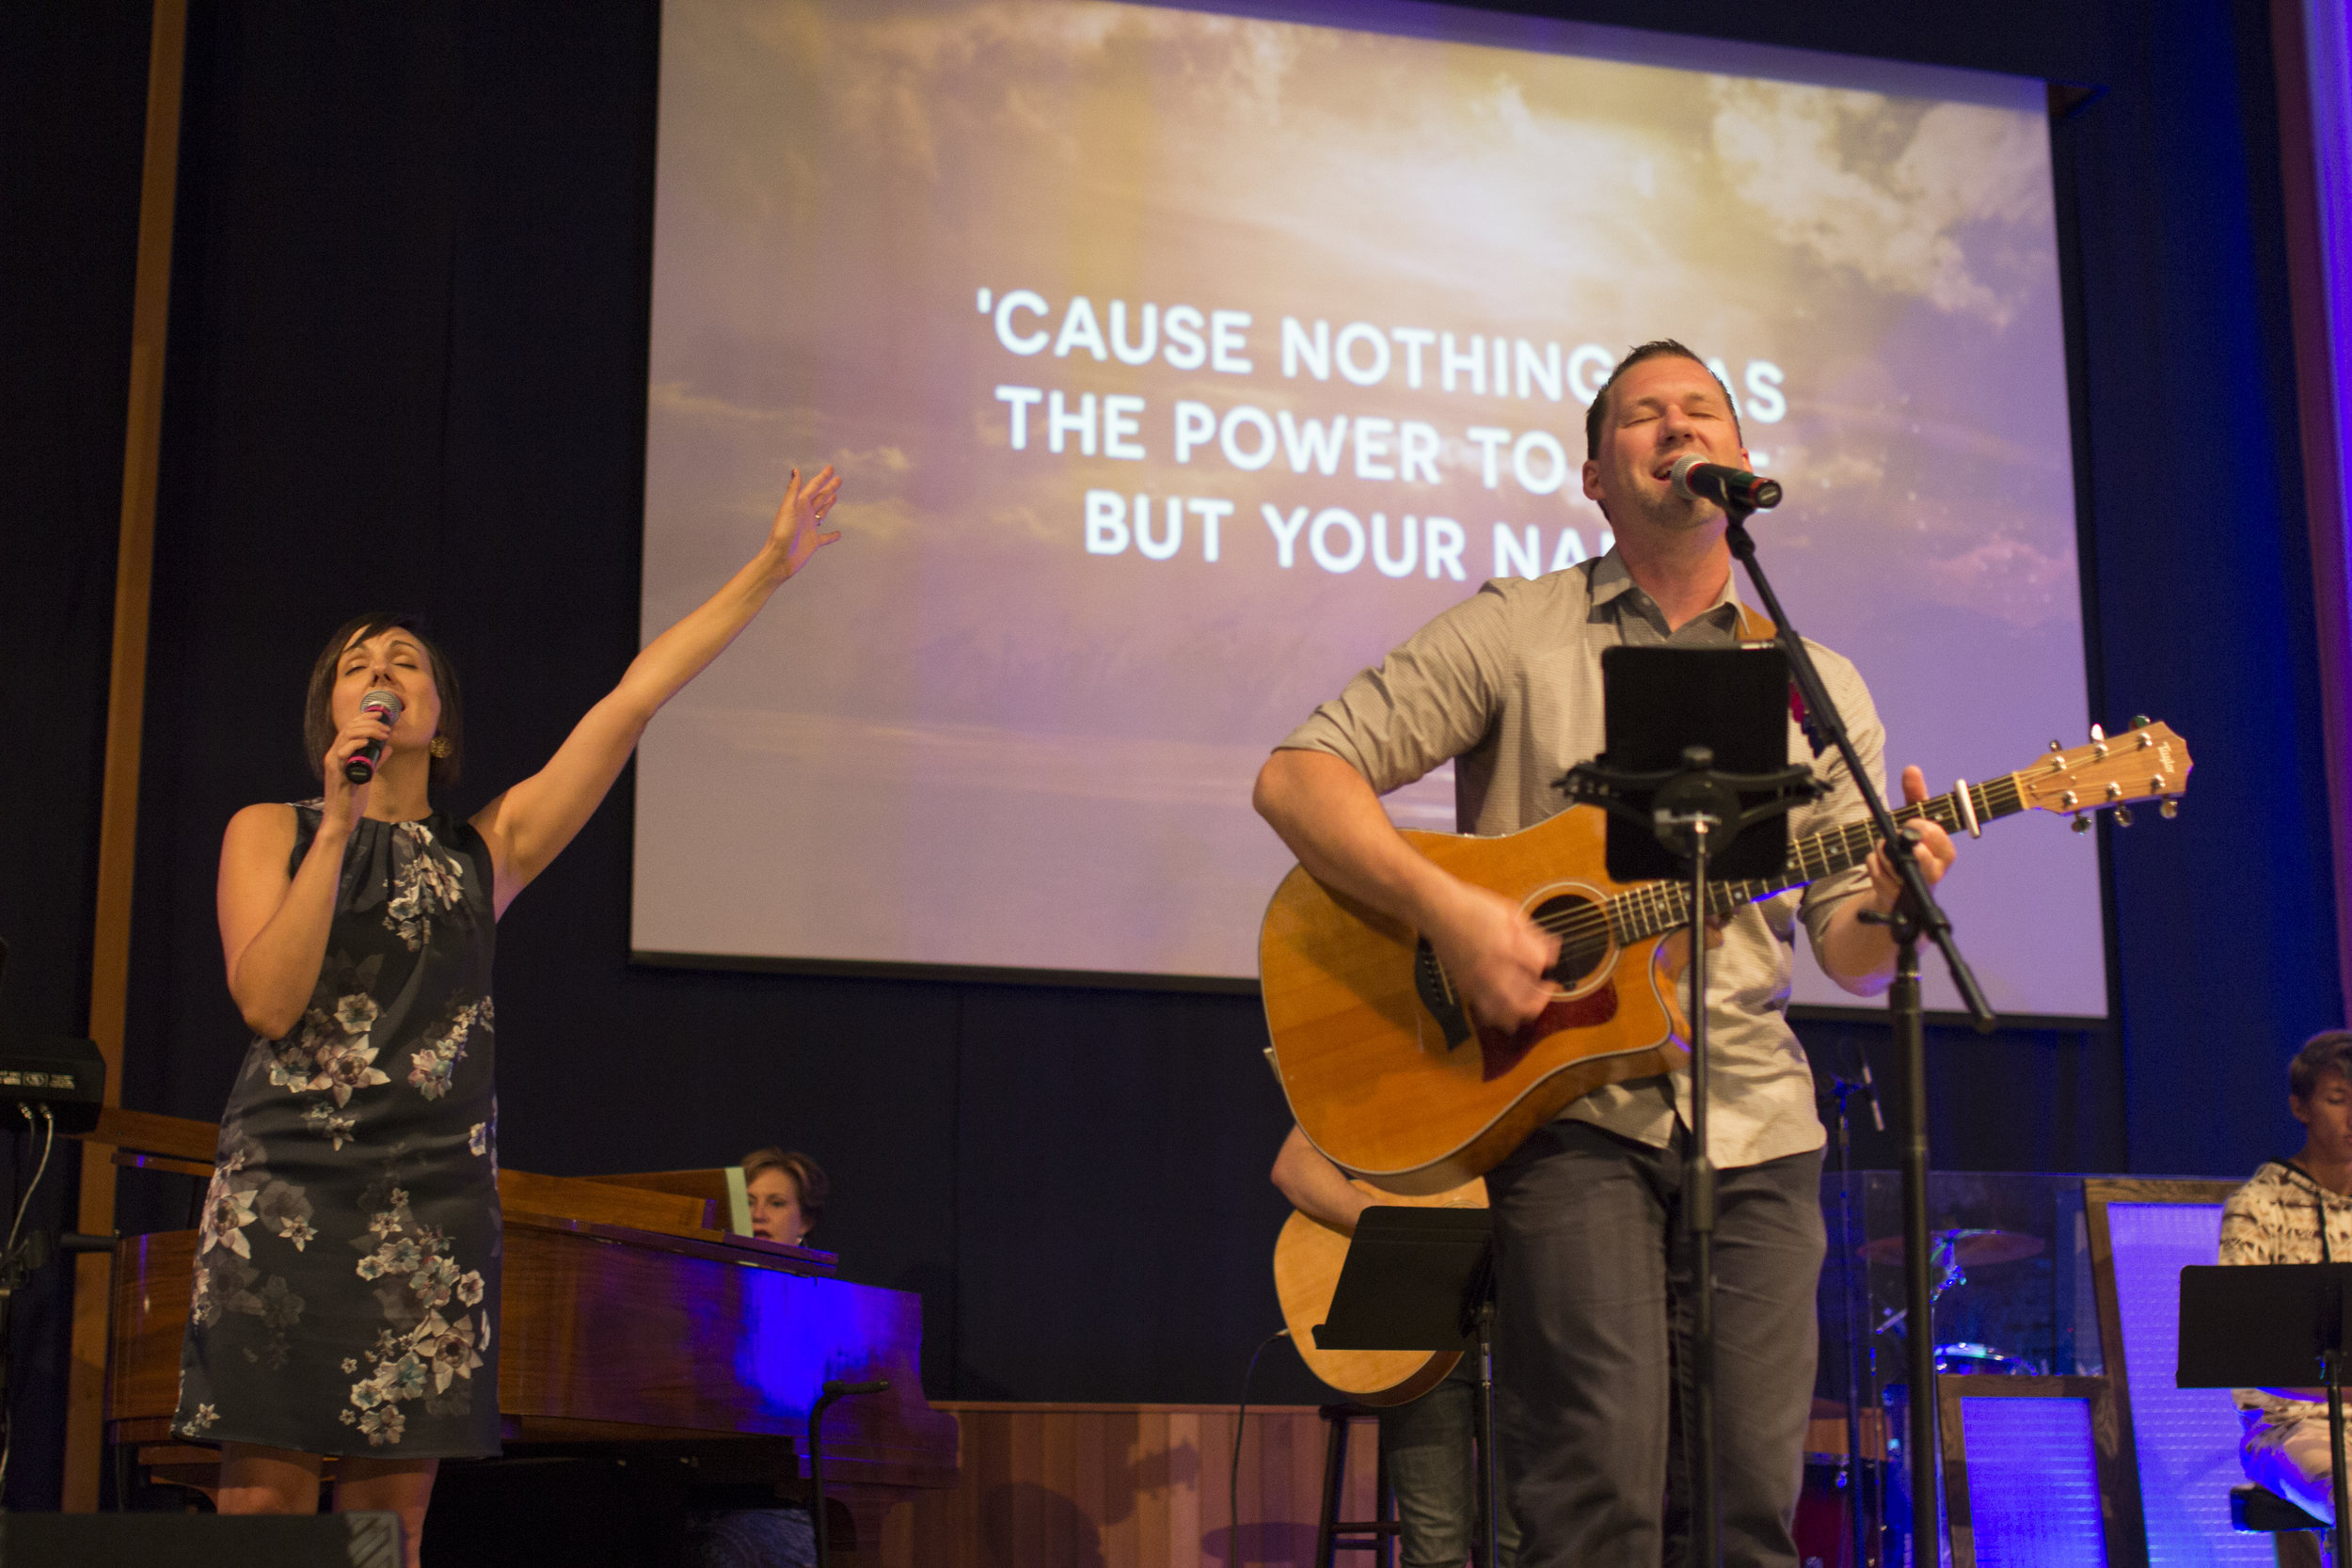 Seth and Andrea lead in worship